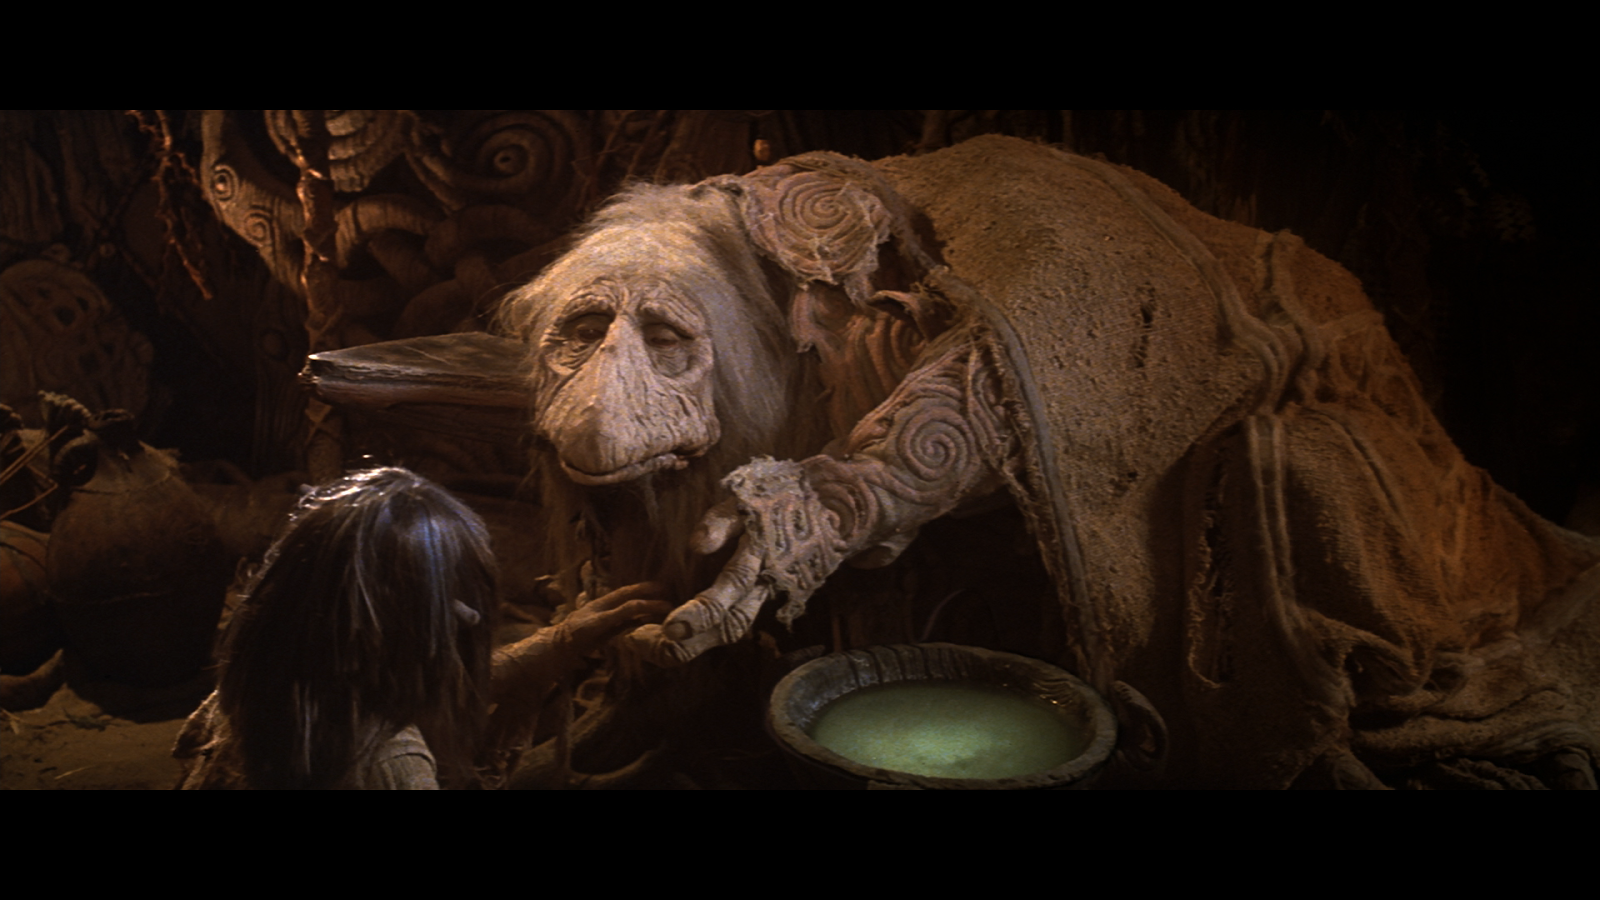 an analysis of a hero of the ages from the movie the dark crystal That spirit in invention, that desire to construct and match wits with an enemy, propel the action in big hero 6 -- giving young audience members terrific role models.